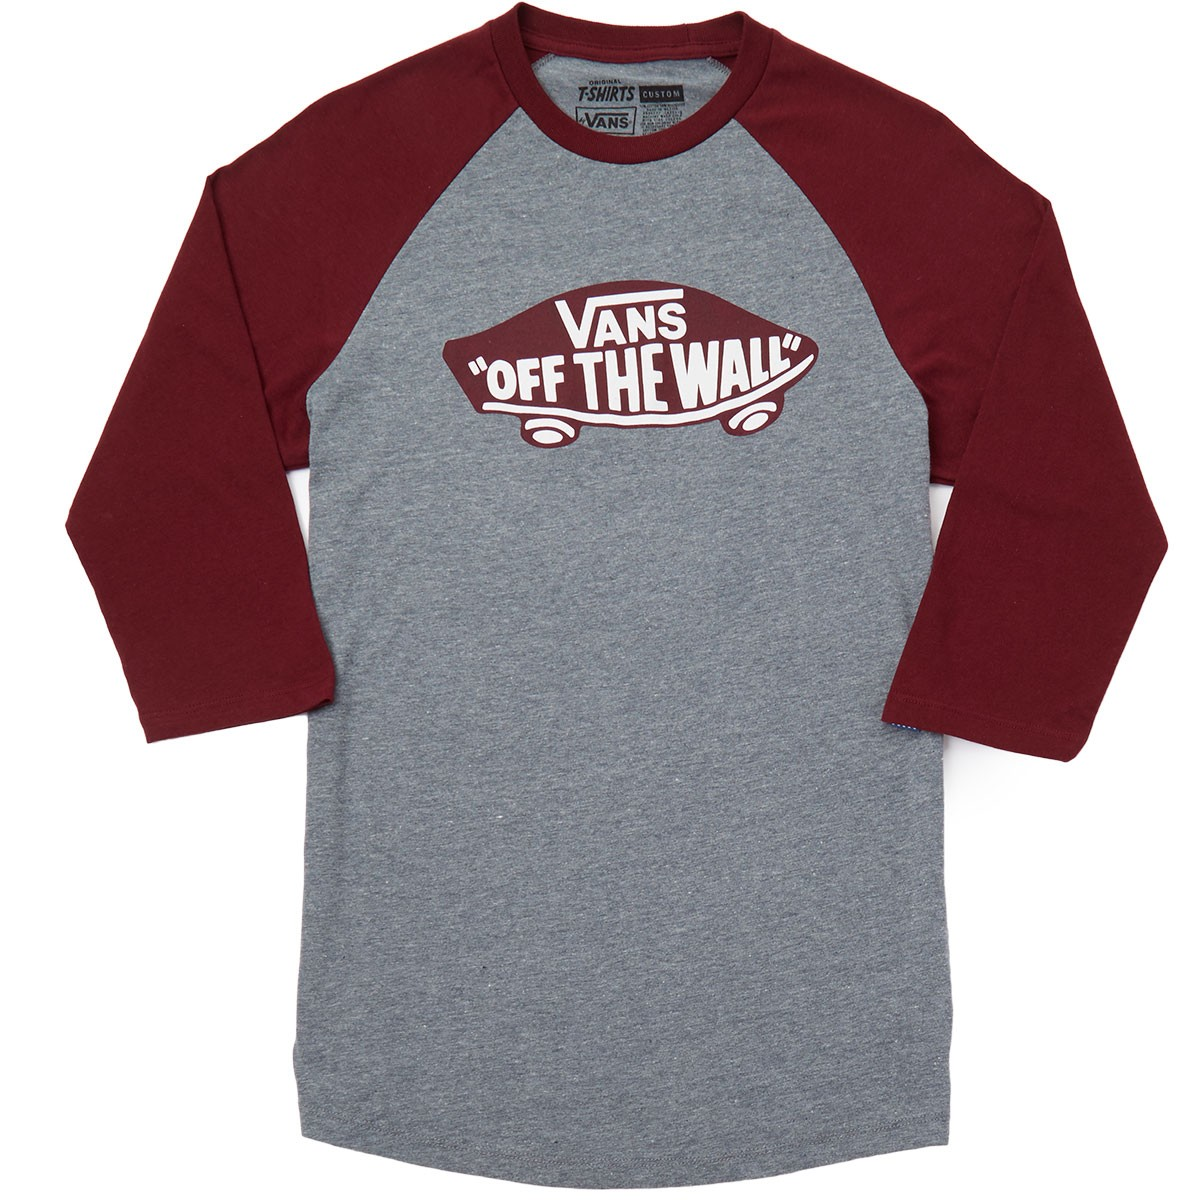 7c0239b7129 Vans Off The Wall T Shirt Red